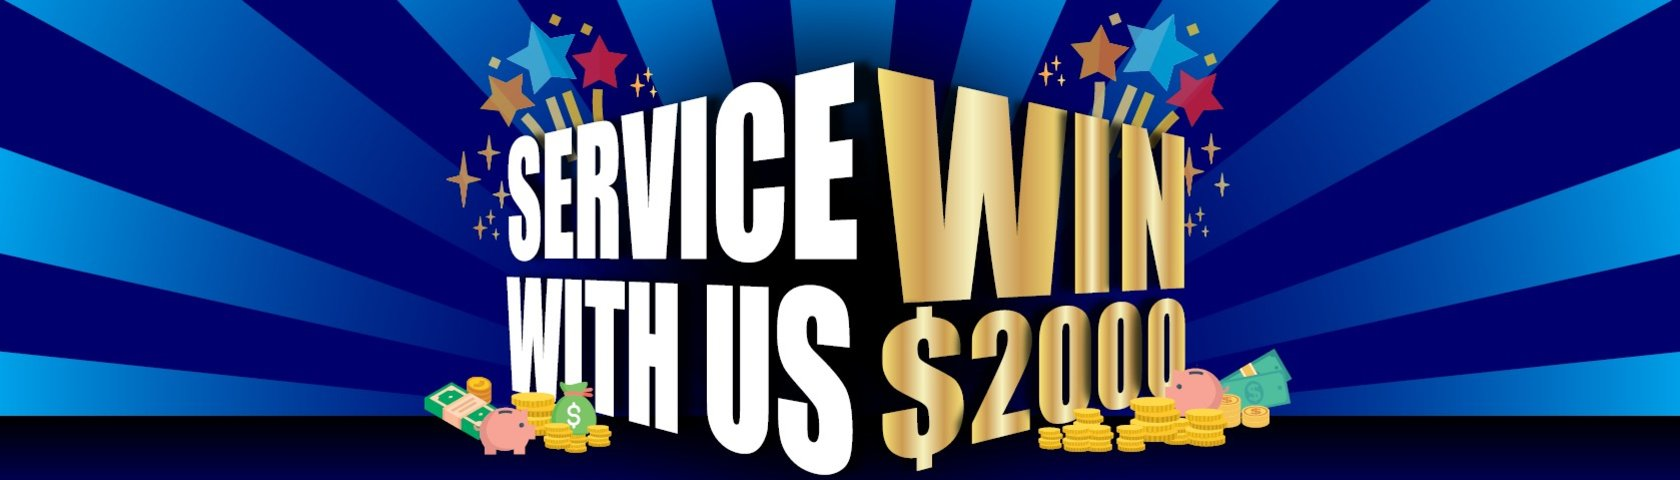 Service to win $2000